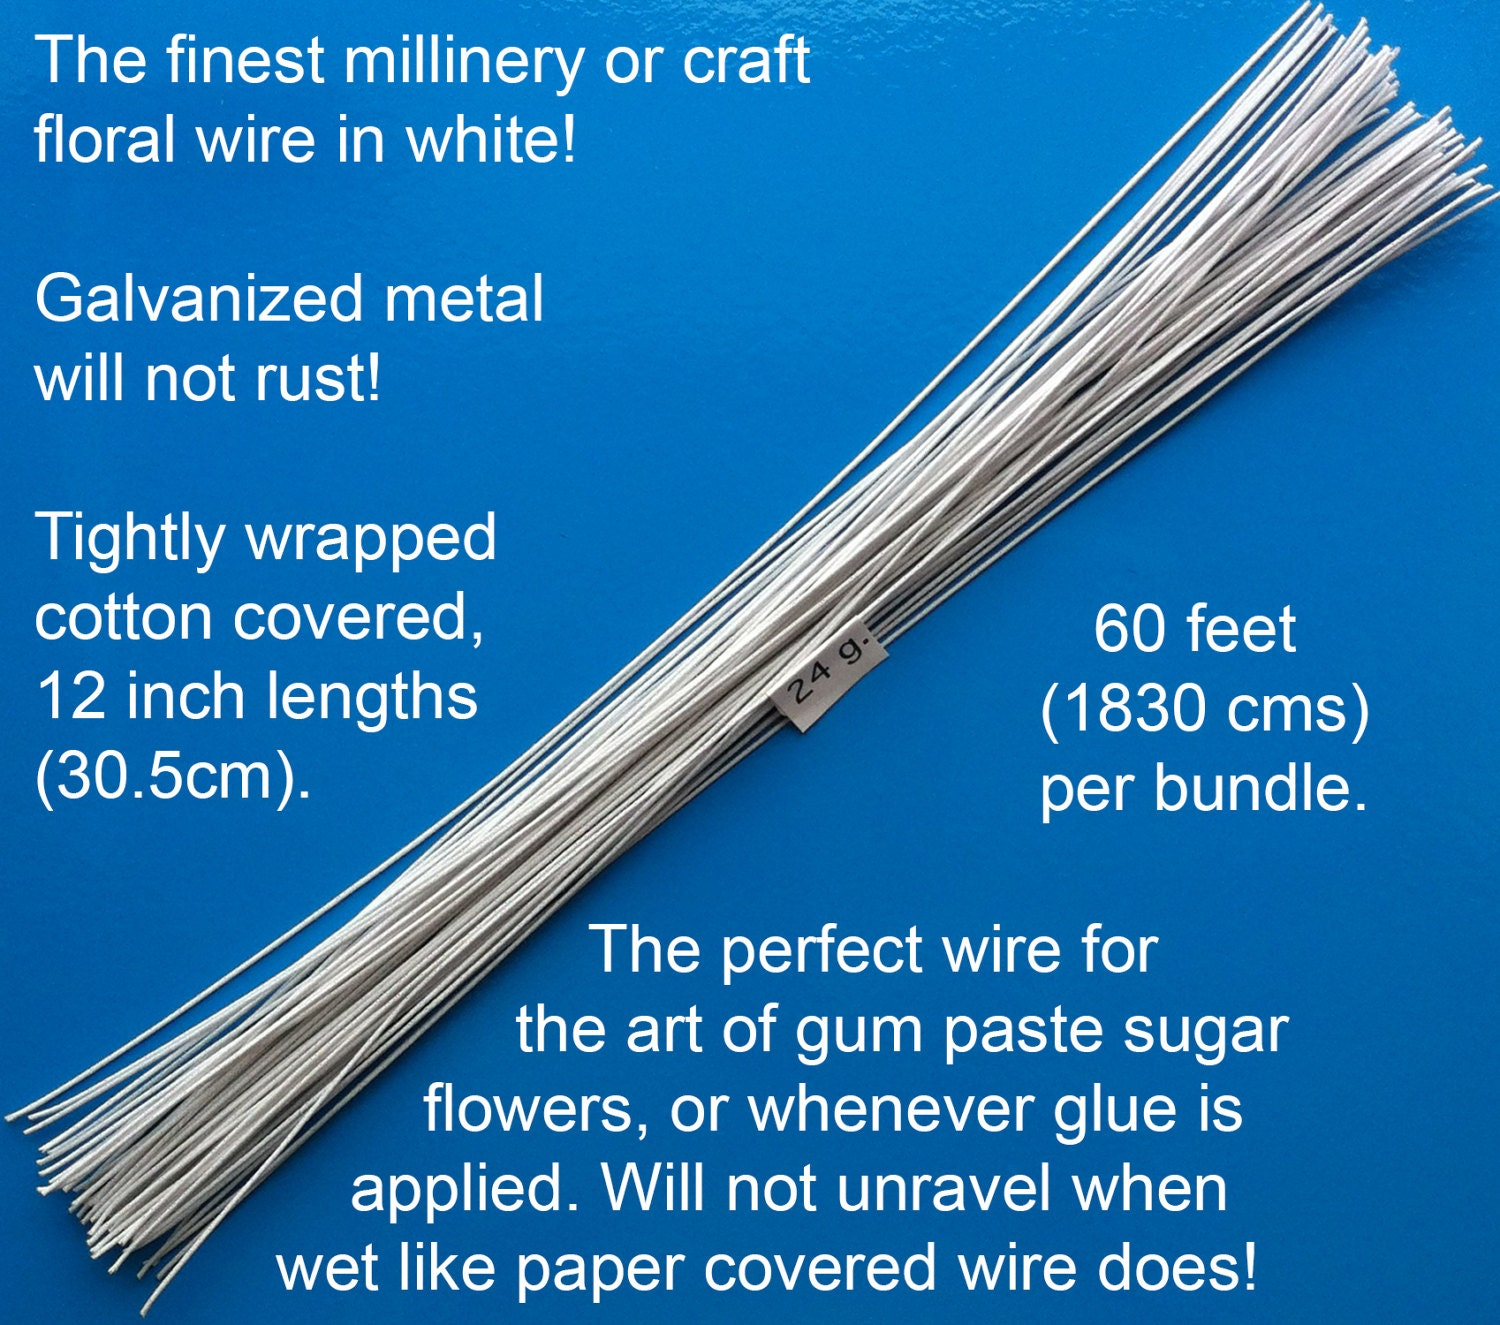 24 Gauge White Cotton Covered Floral Wire - 60 feet per bundle (18.3 ...